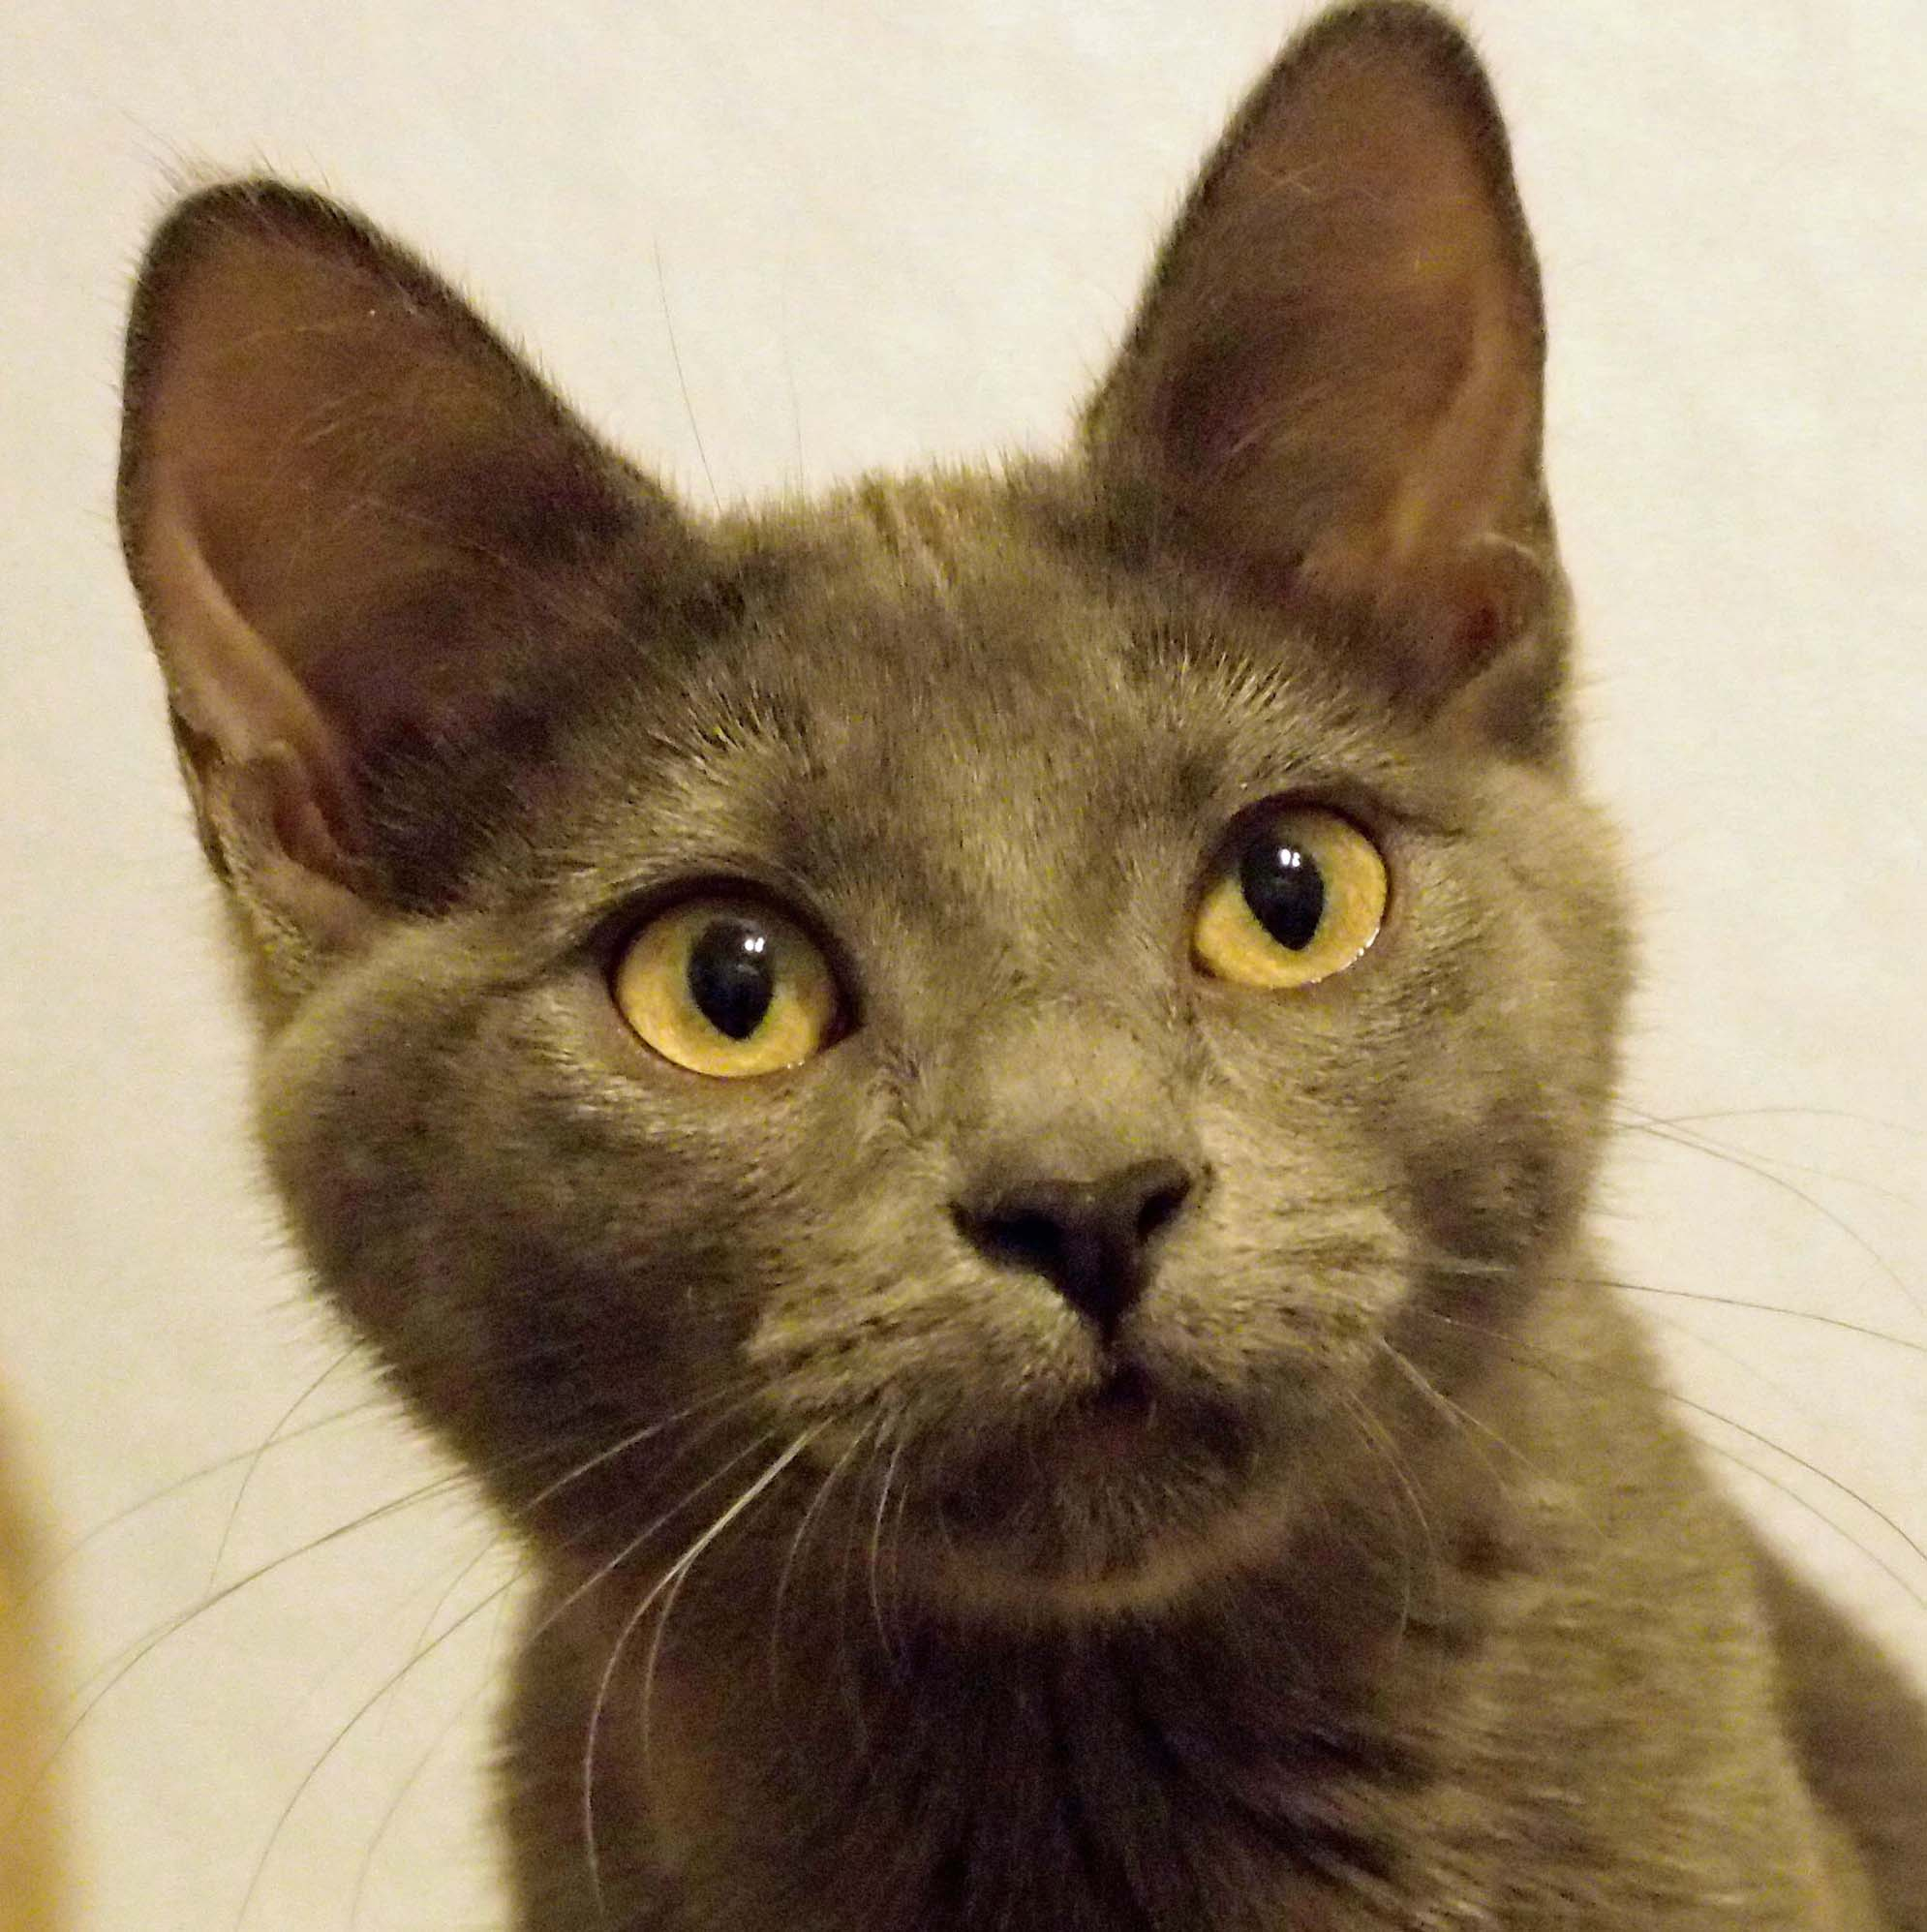 Ashley is a feline leukemia-positive cat being helped by our grant.